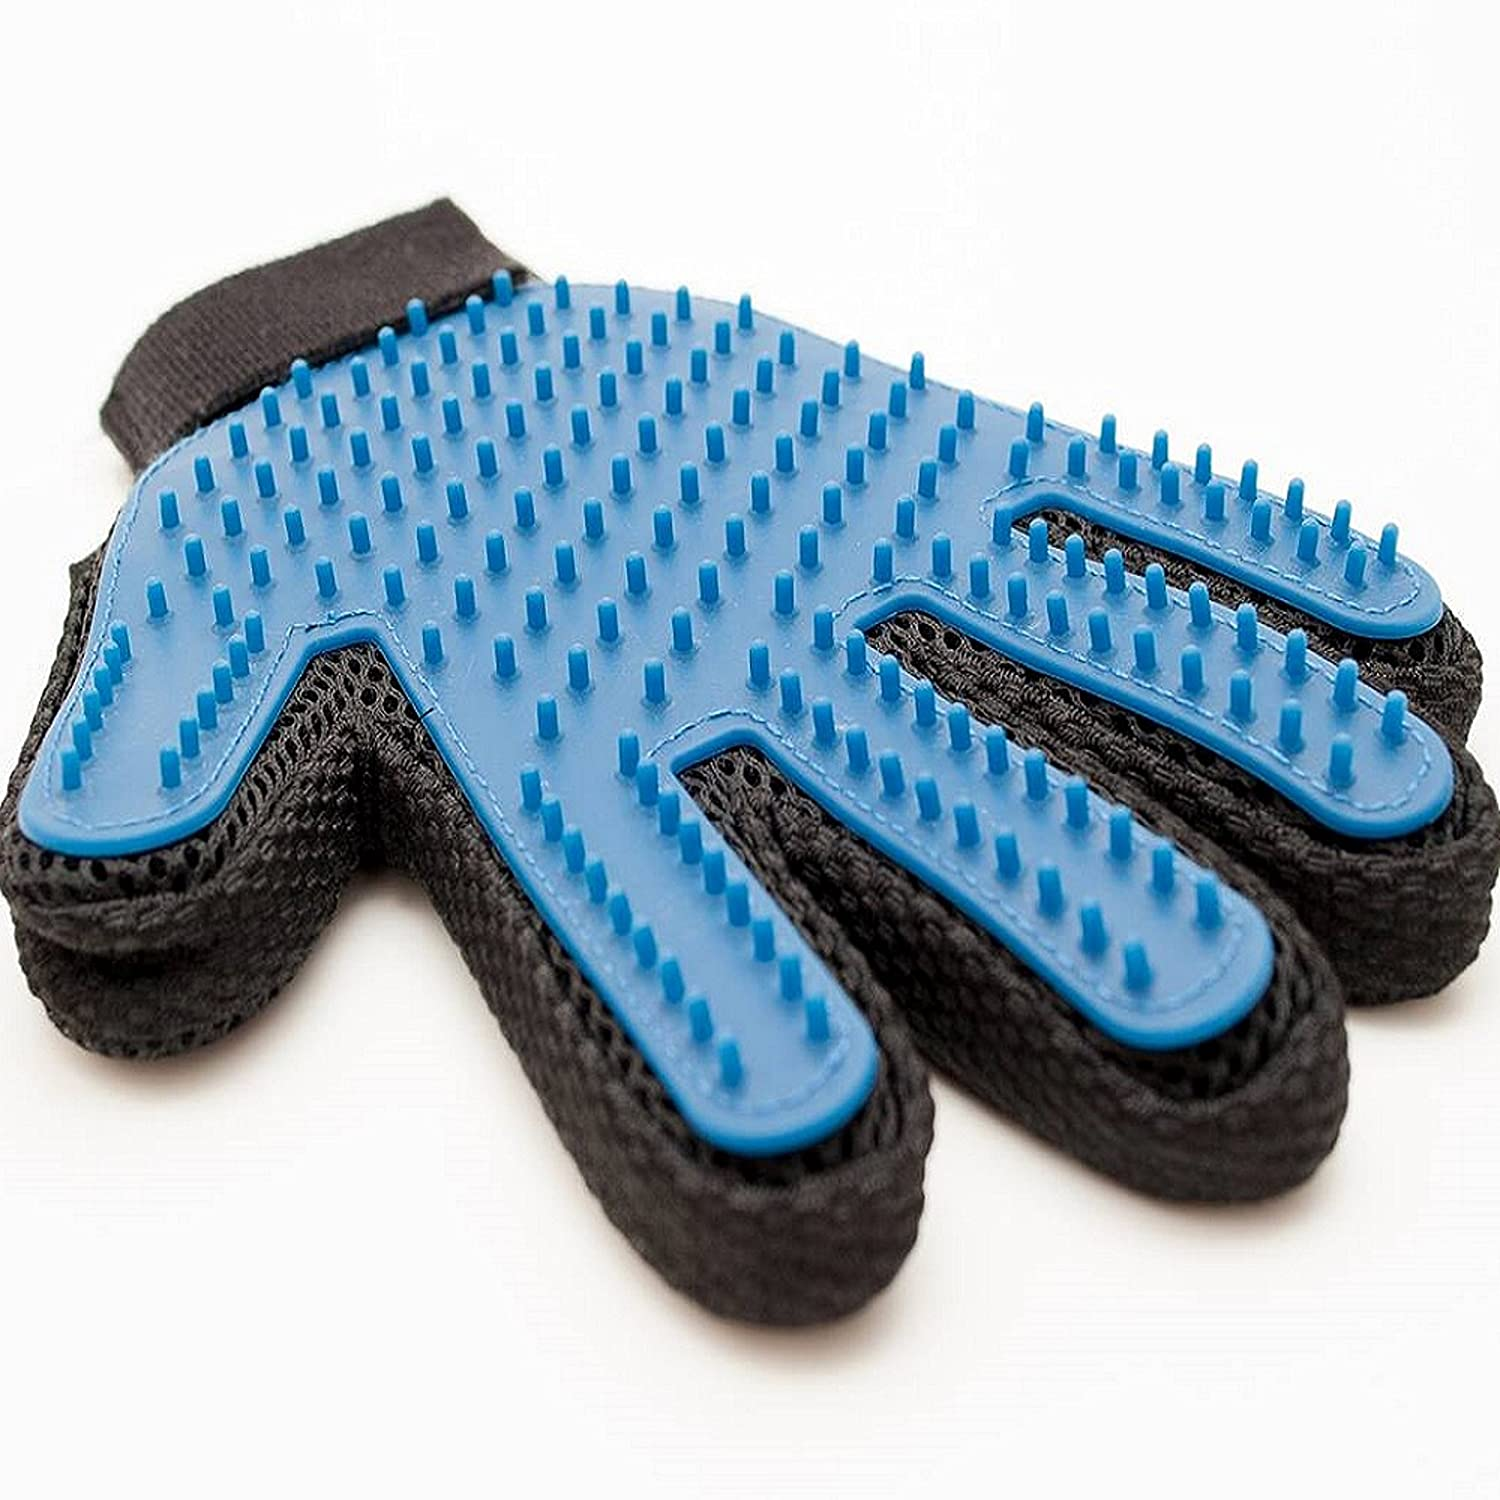 : Amazon.com: misterrmar Pet Grooming Brush Glove - For Long Short Or Curly  Hair Comb - Gentle Massage Tool And Hair Removal For Dogs Cats and Horses  ...